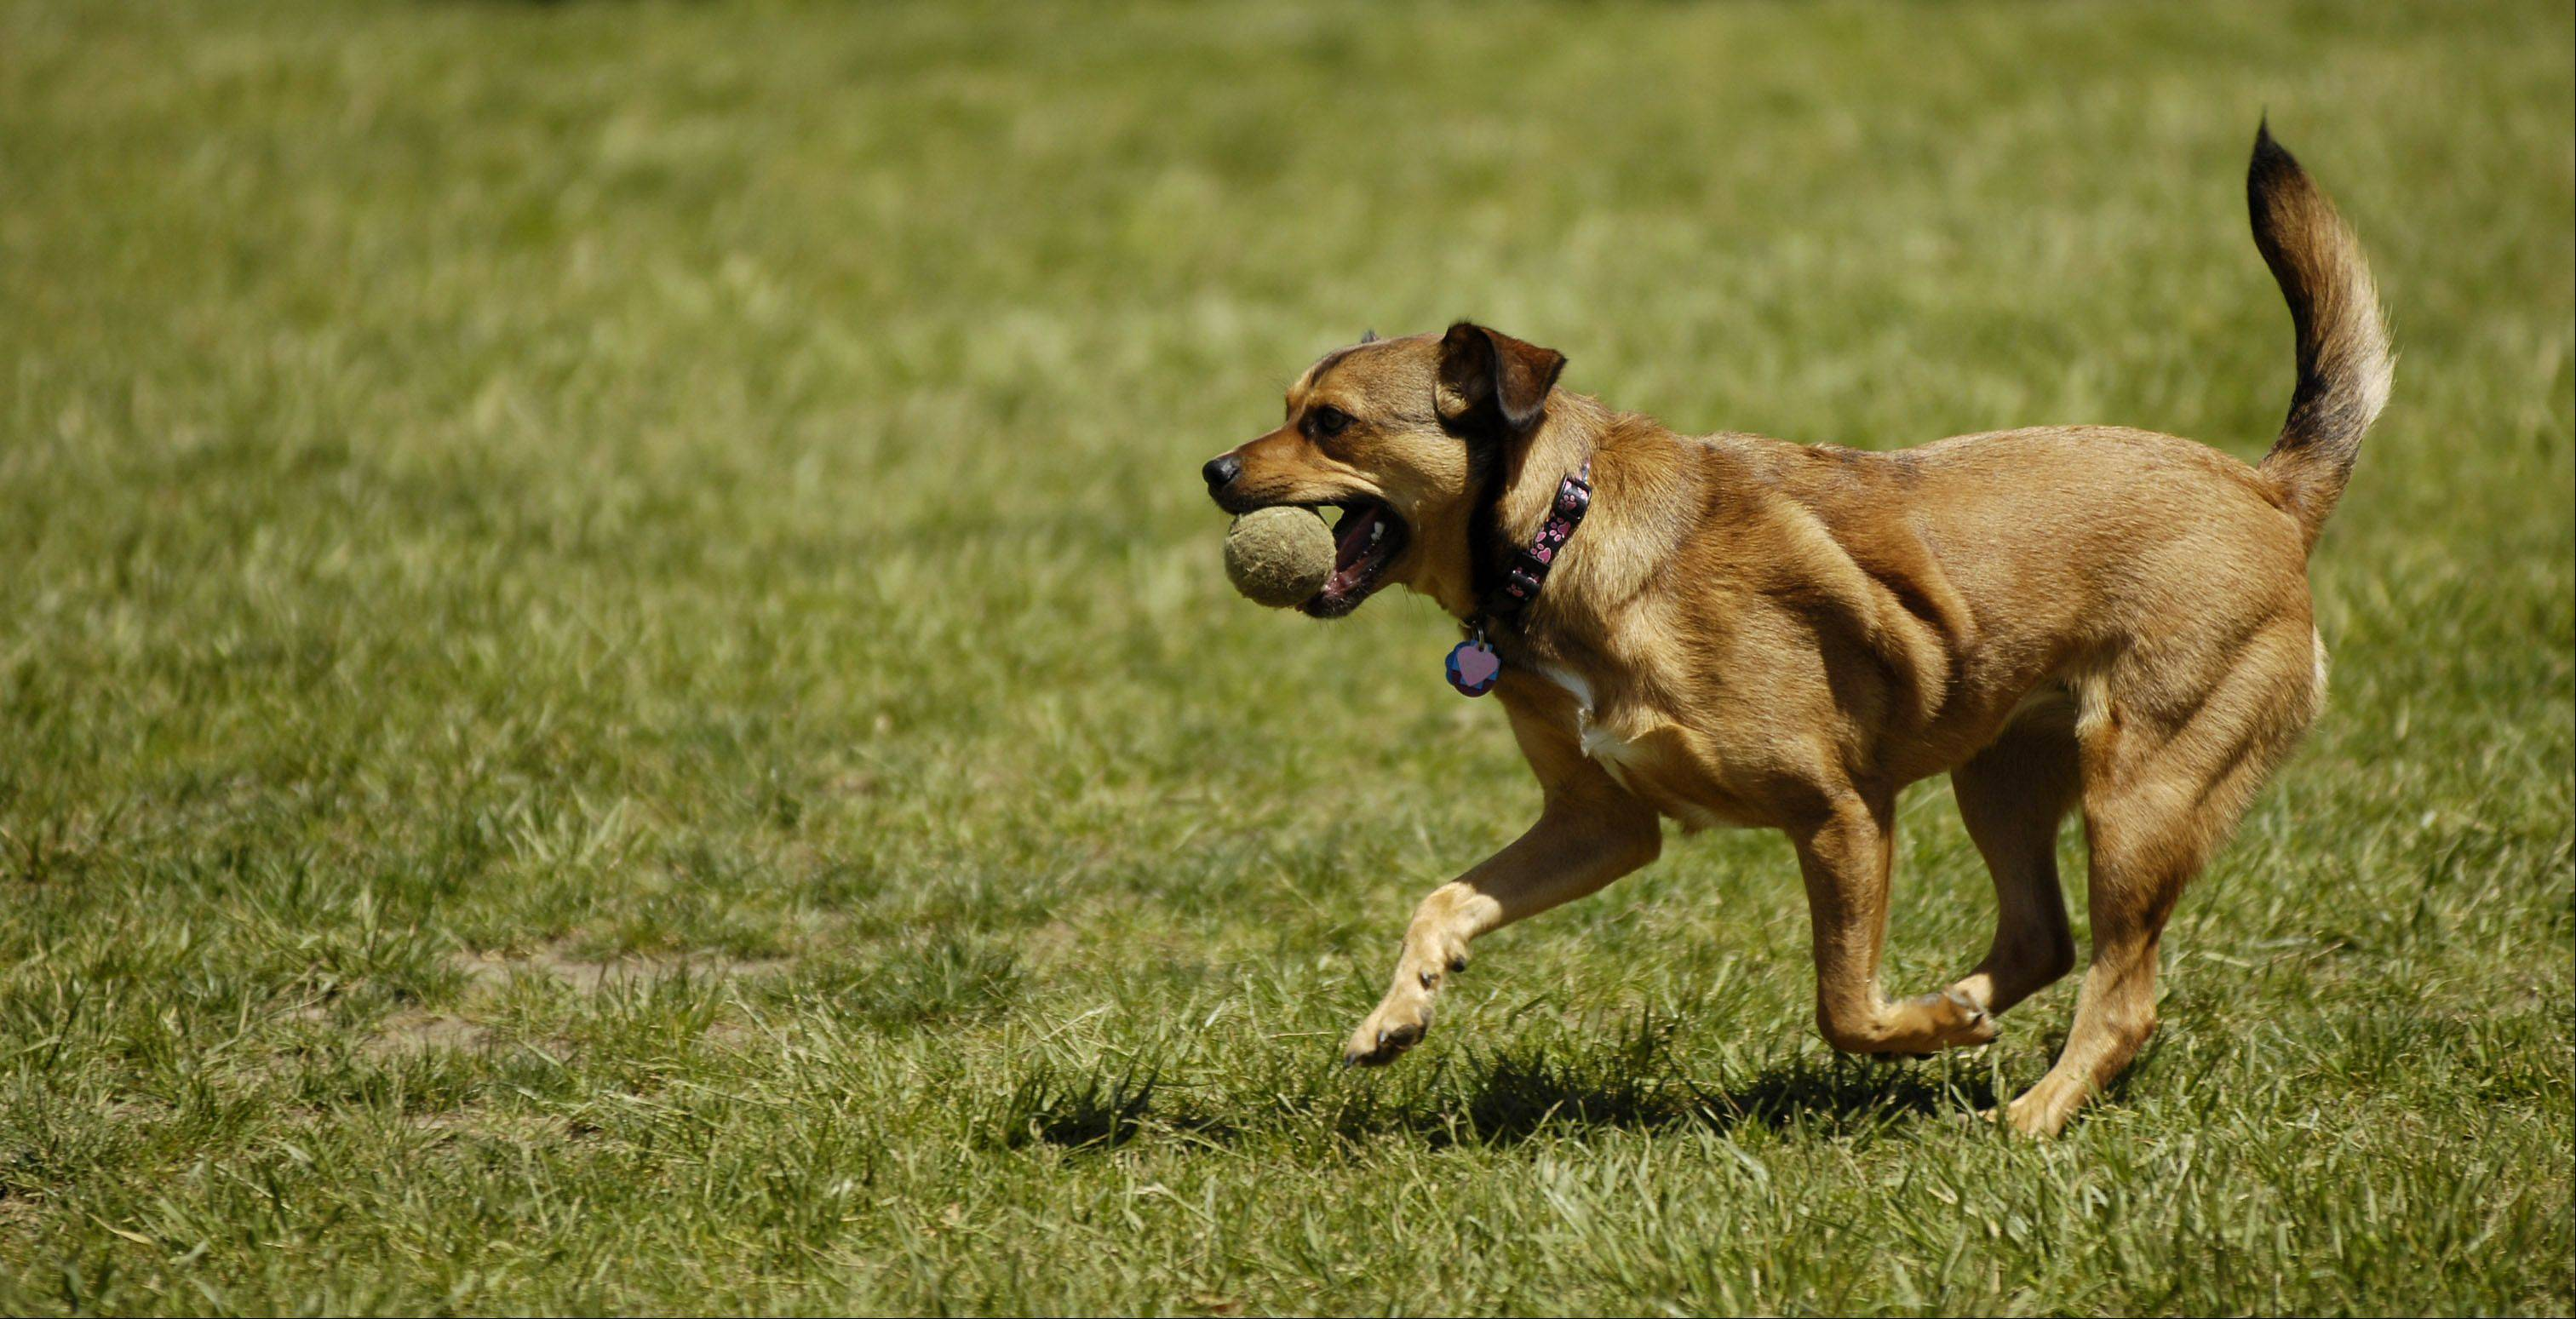 No tax increase for dog park in Arlington Heights